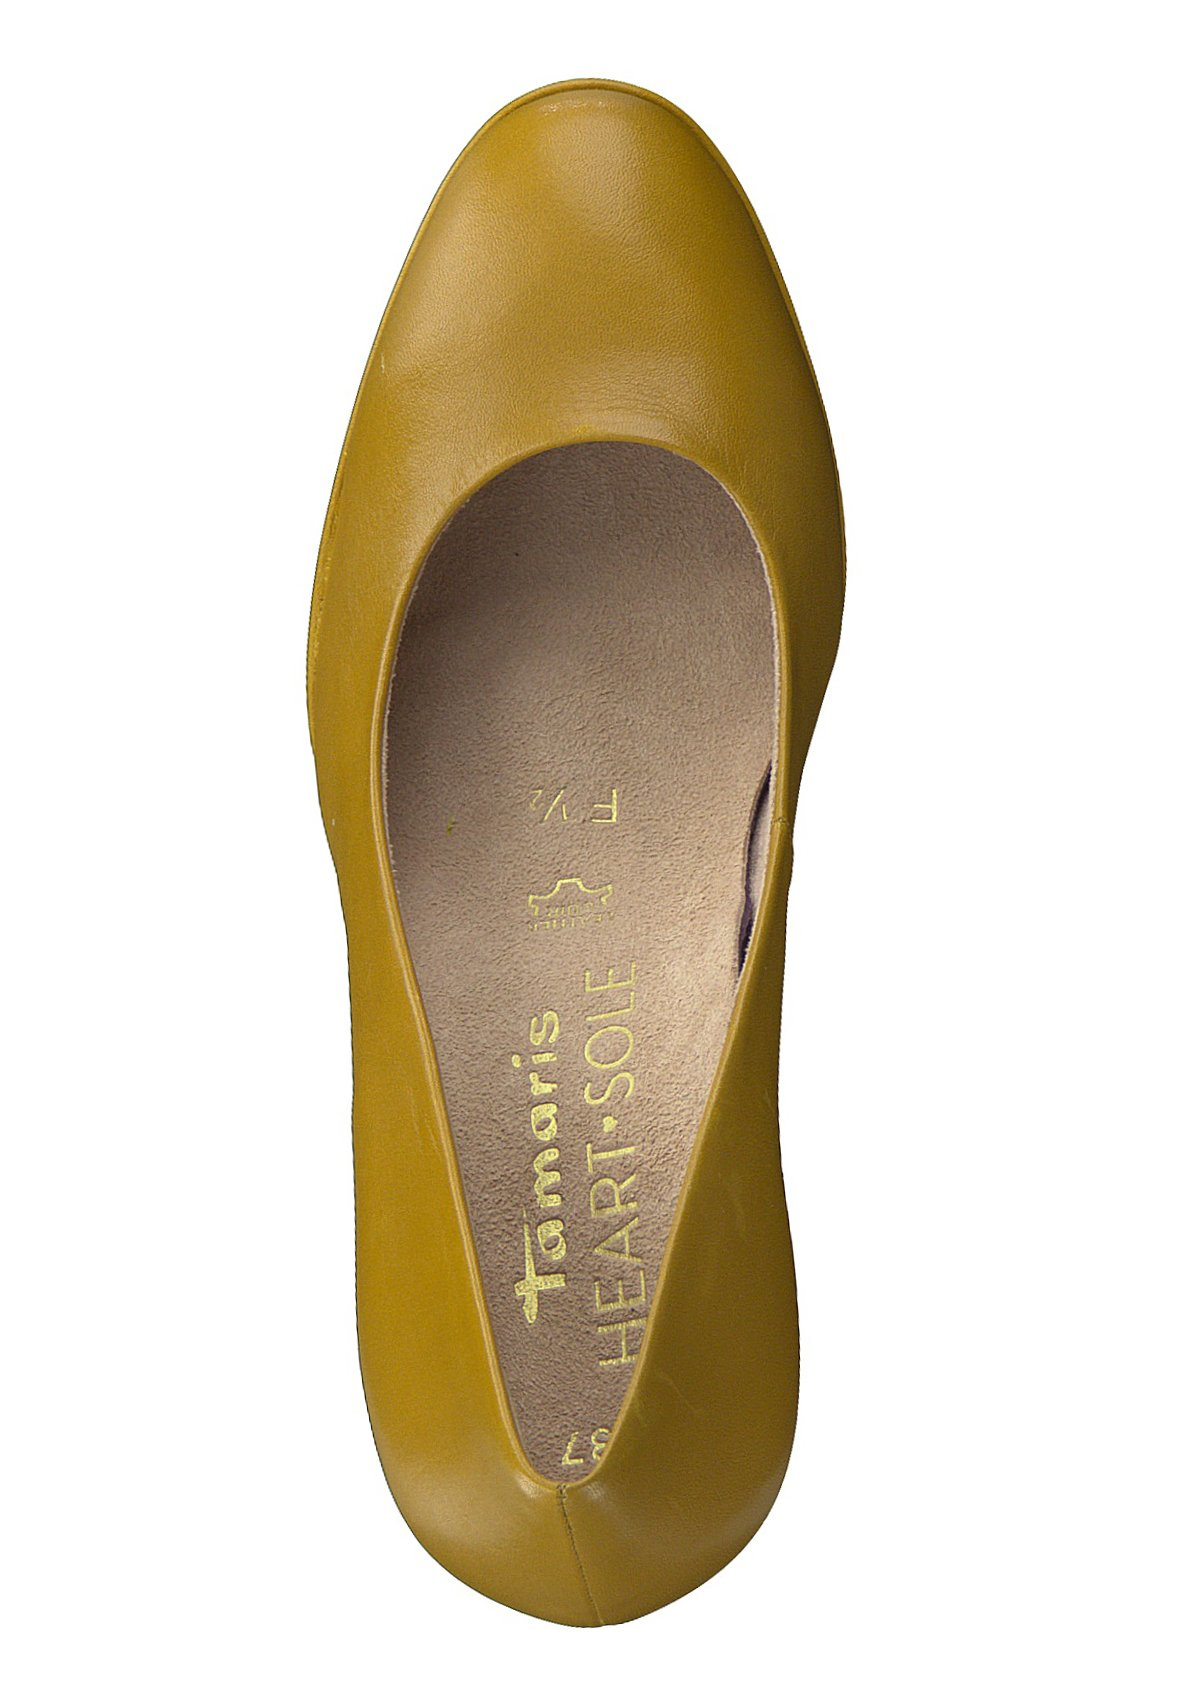 A buon mercato Scarpe da Donna Tamaris Heart & Sole COURT SHOE Decolleté mustard